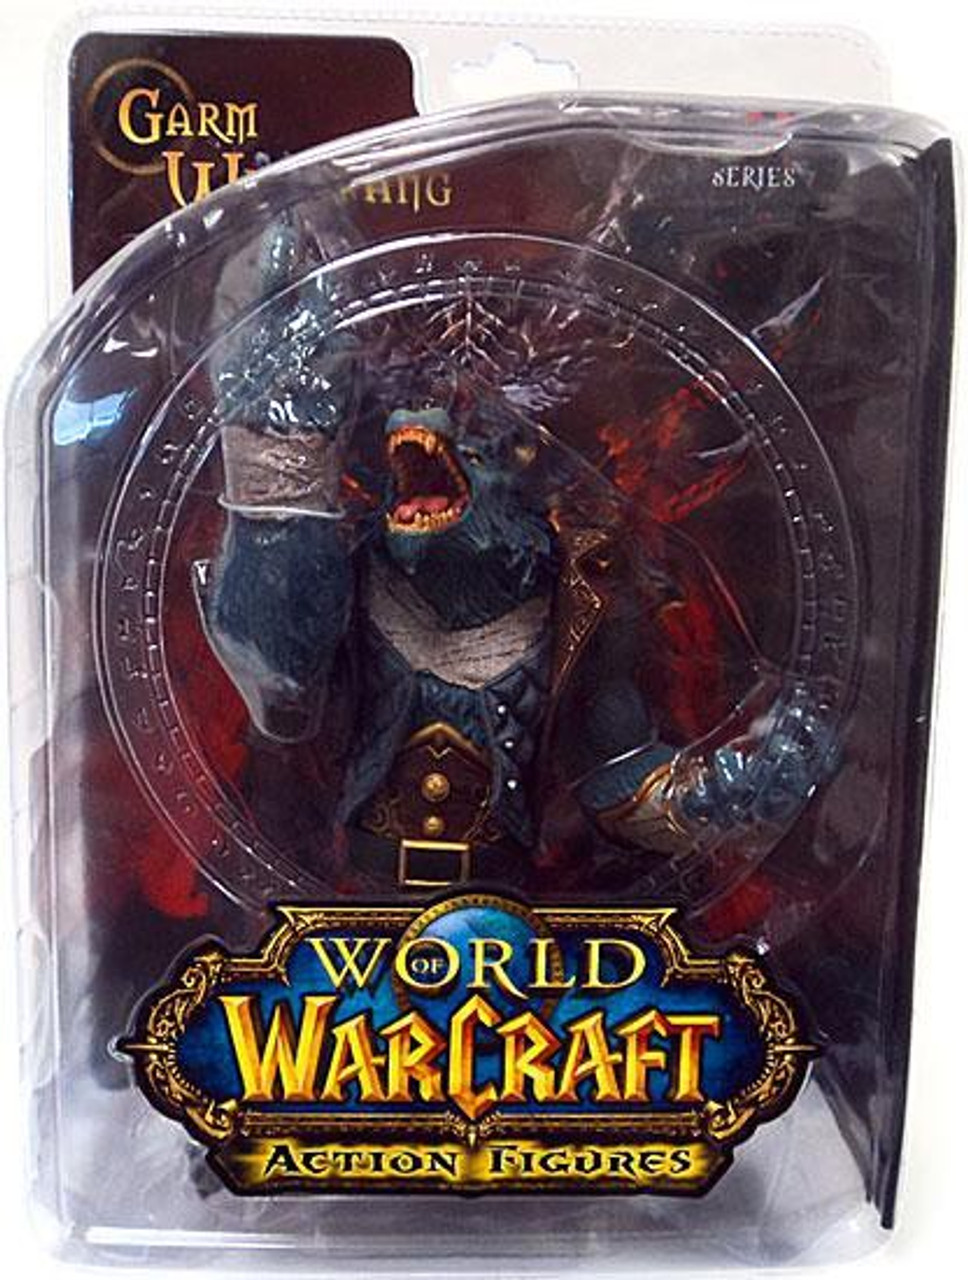 World of Warcraft Series 7 Garm Whitefang Action Figure [Worgen]